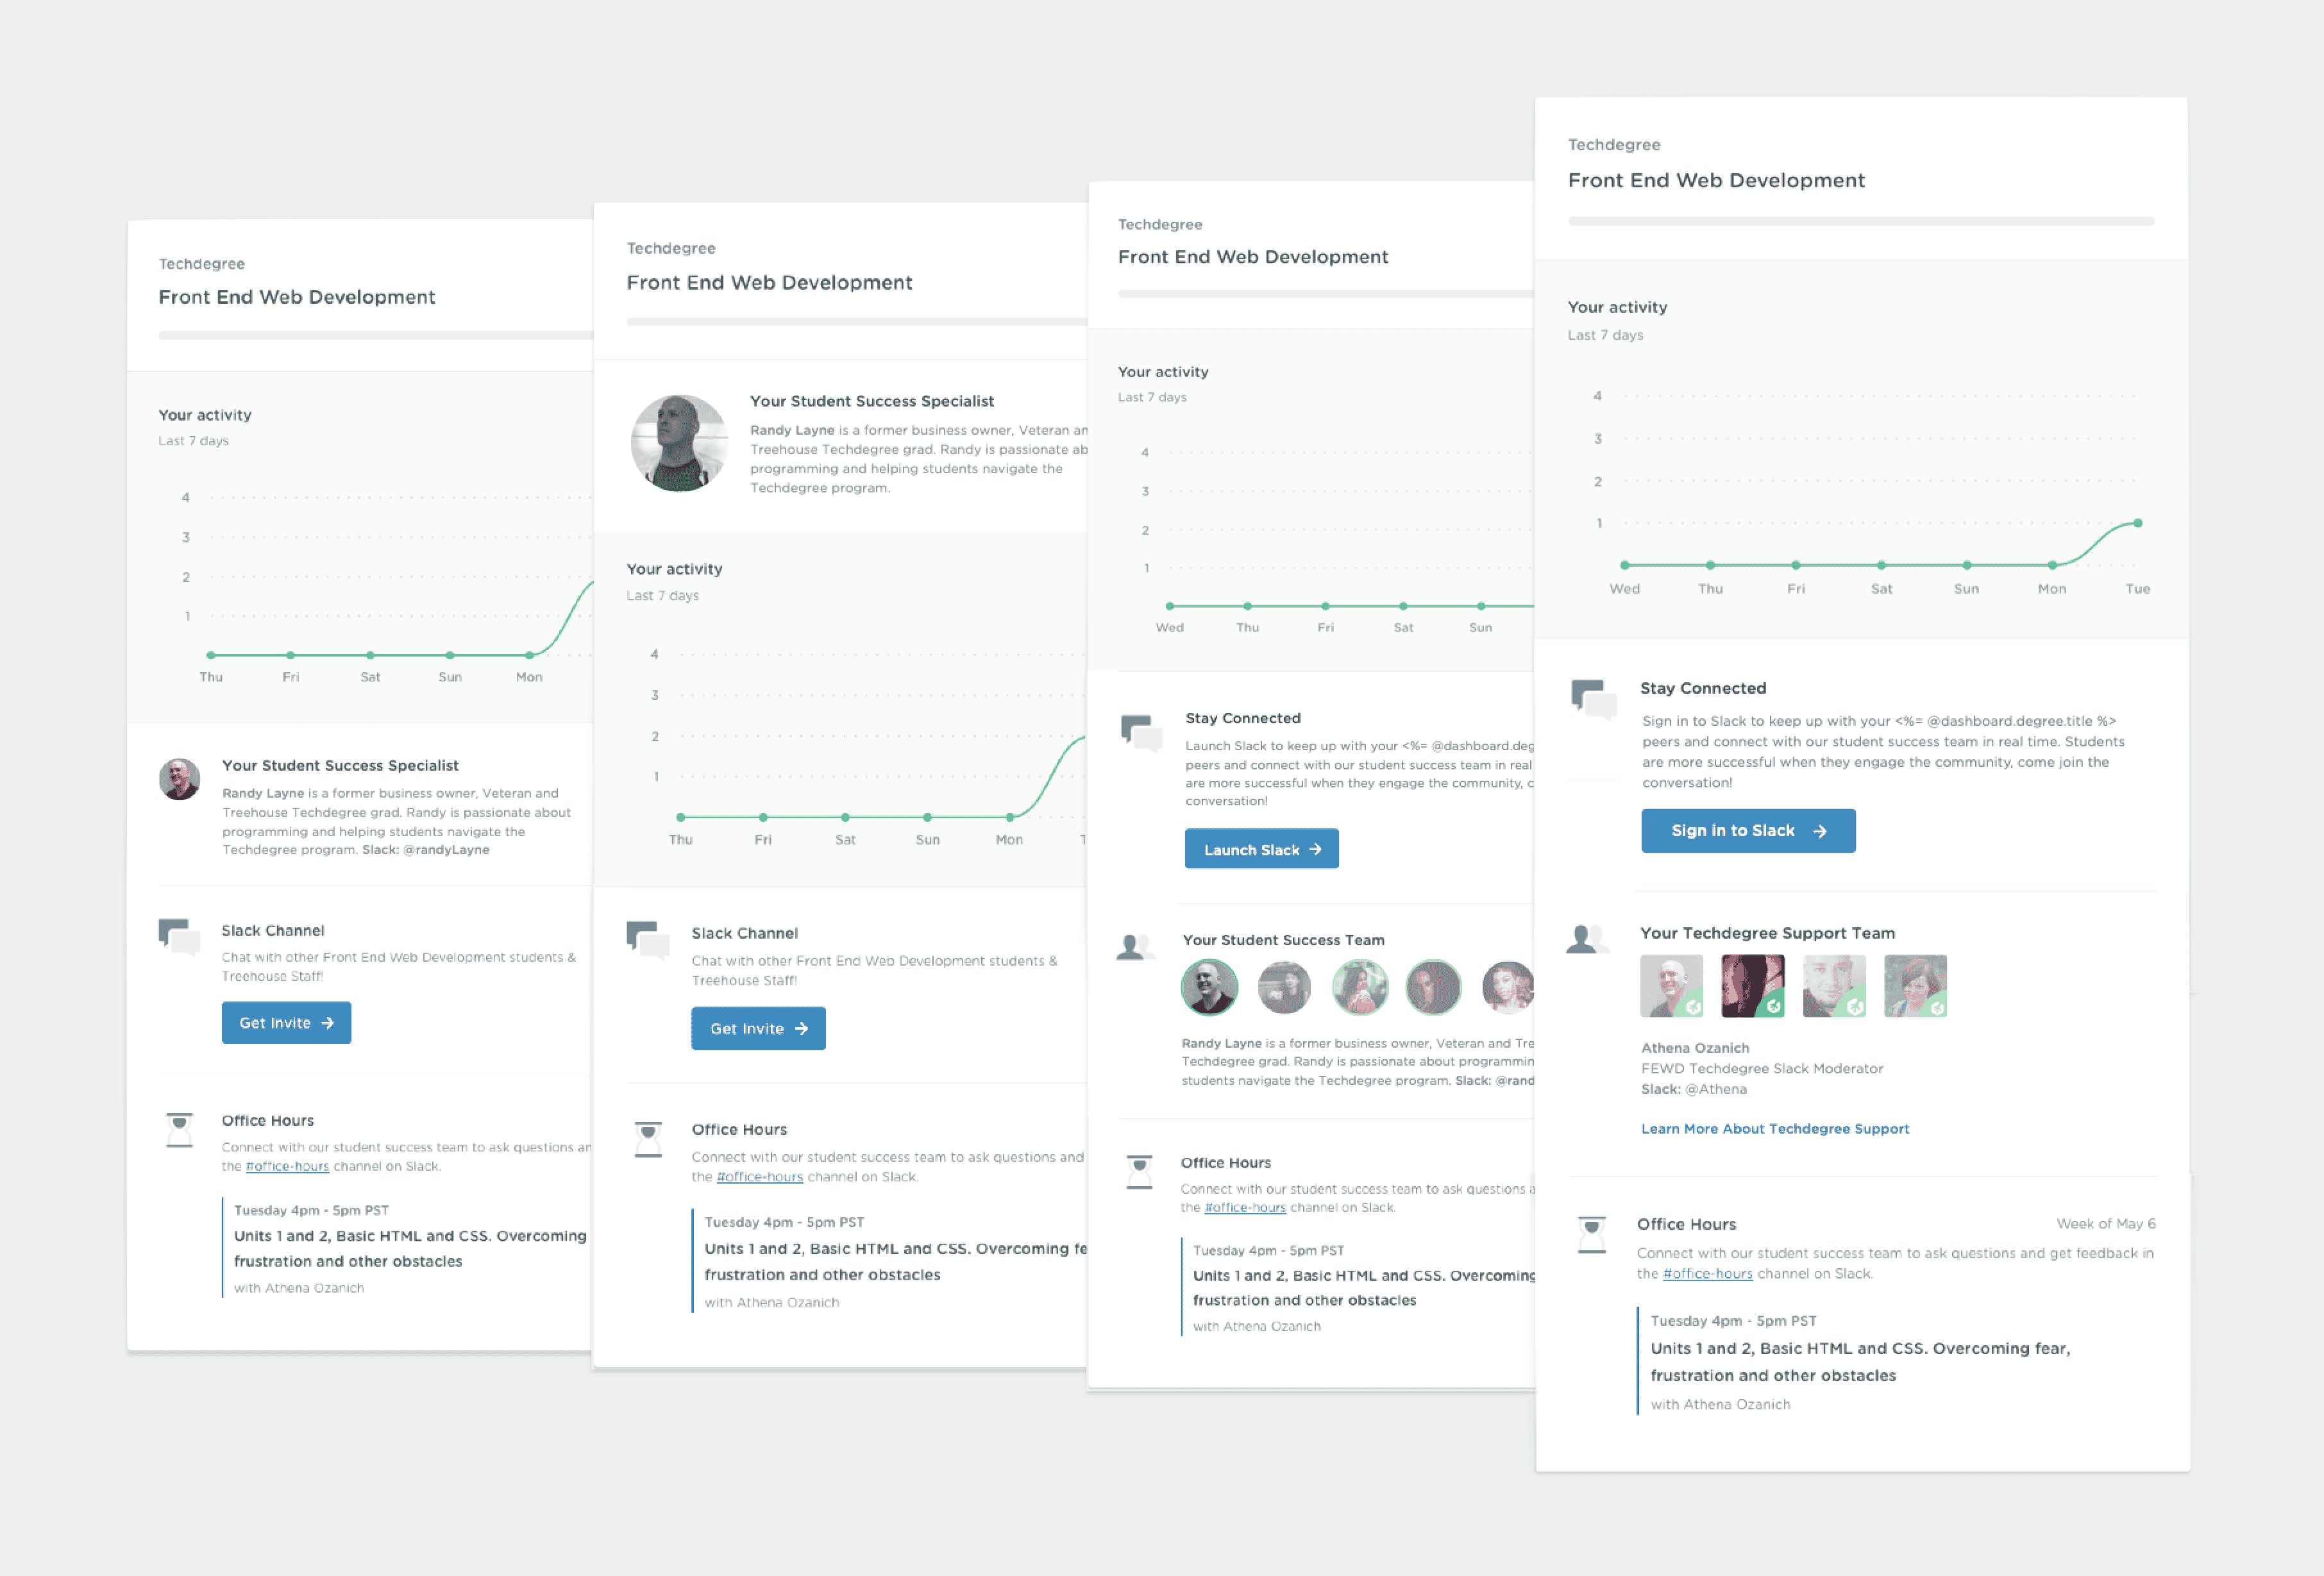 Iterations over time on our dashboard project